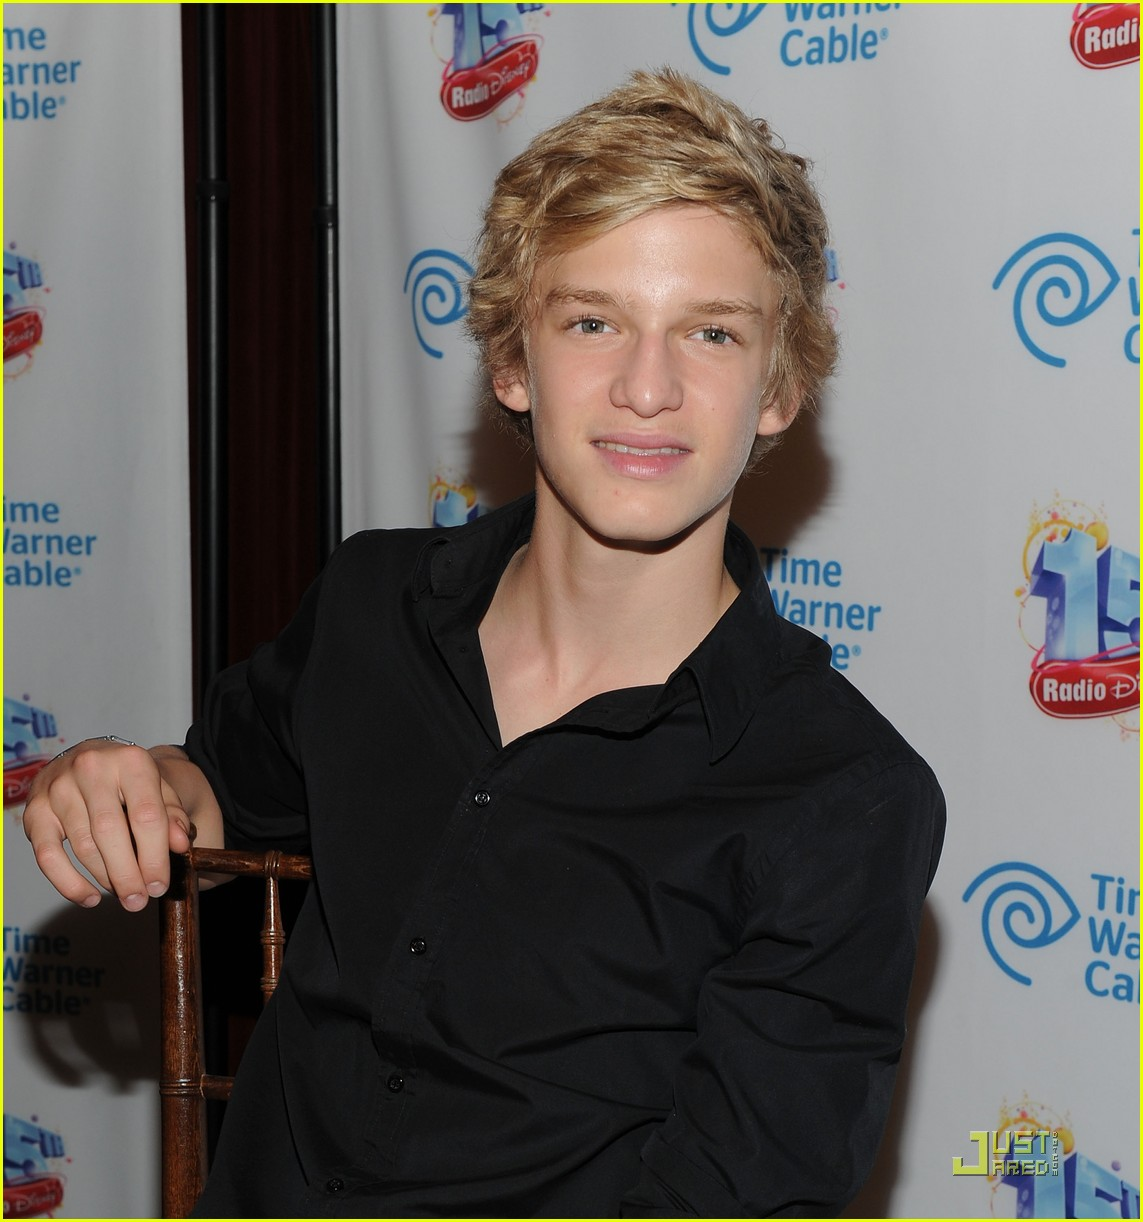 cody simpson rd 15 party 10